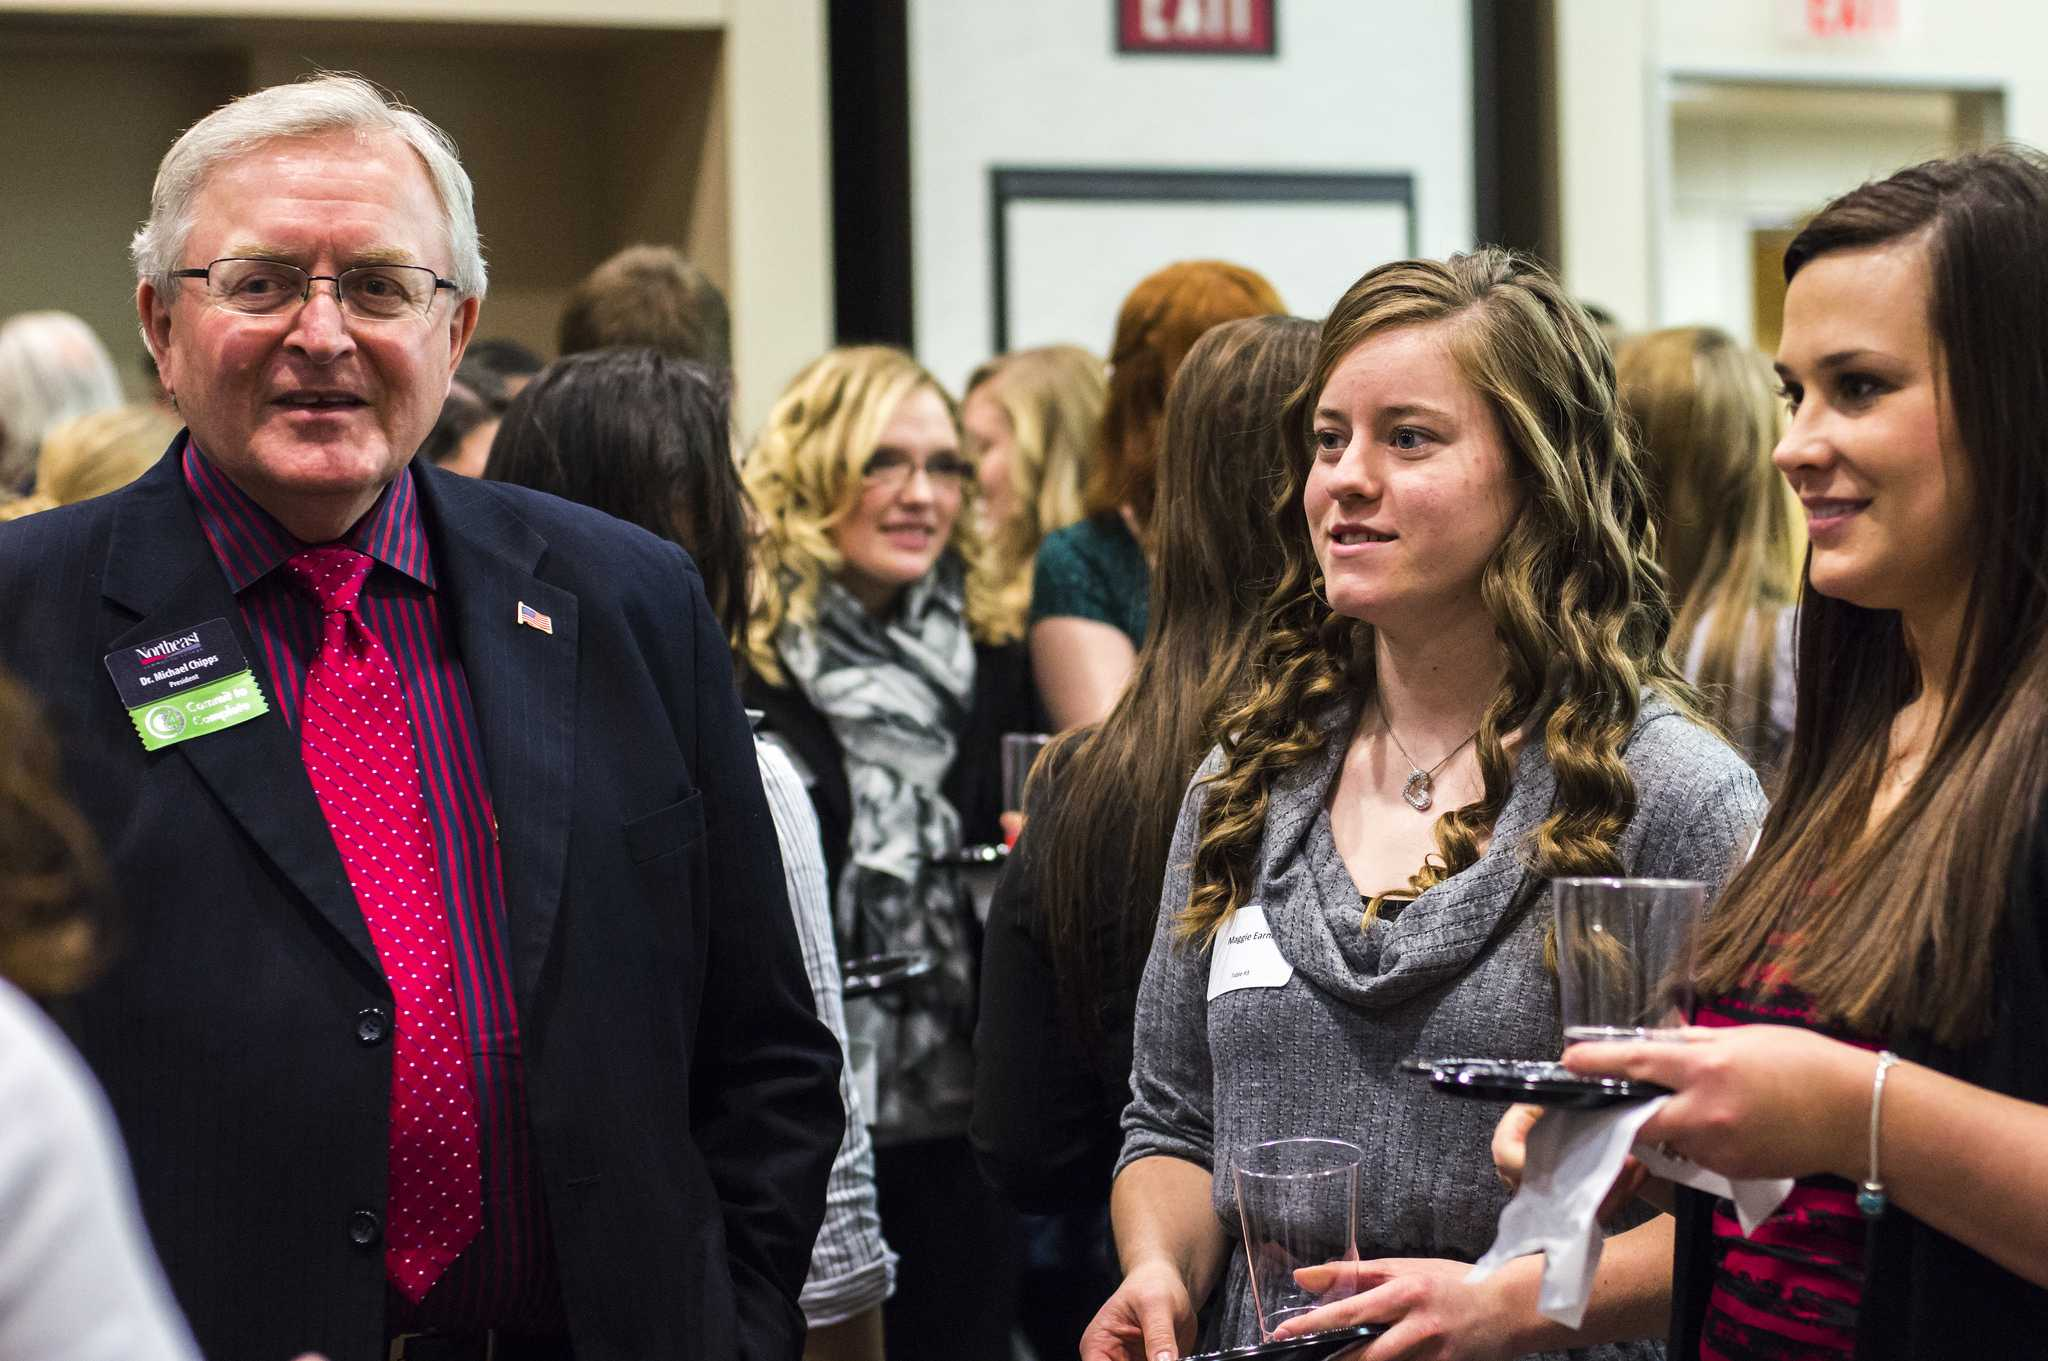 Dr. Chipps chats with students at the Etiquette Dinner last fall.